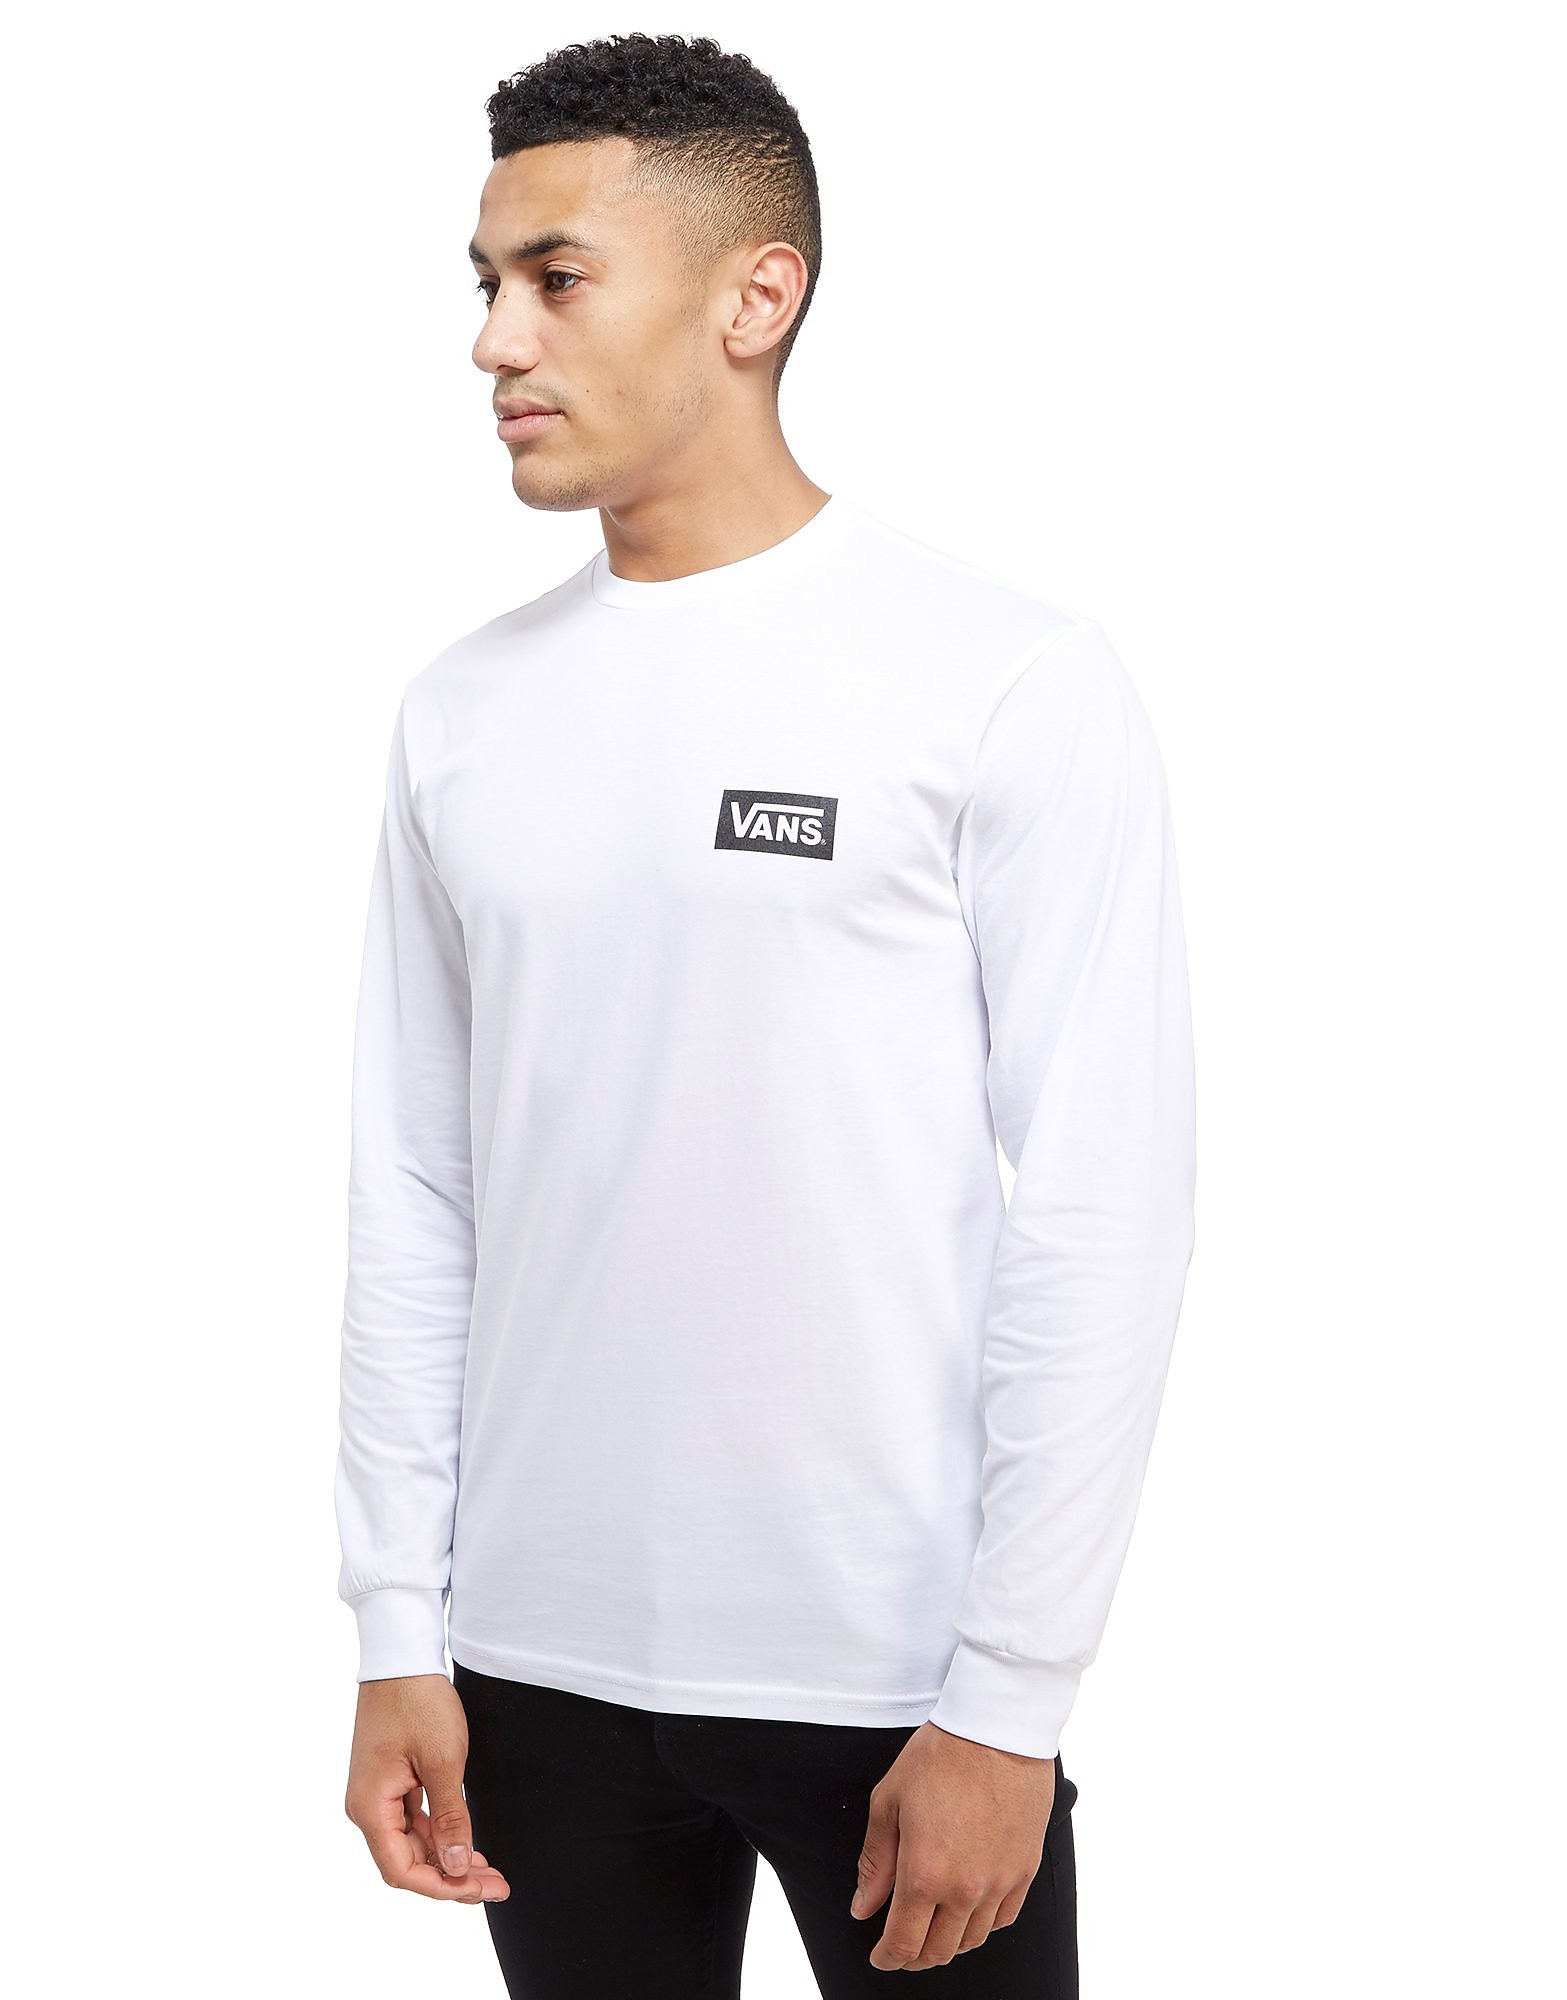 Vans Big Back Long-Sleeved T-shirt